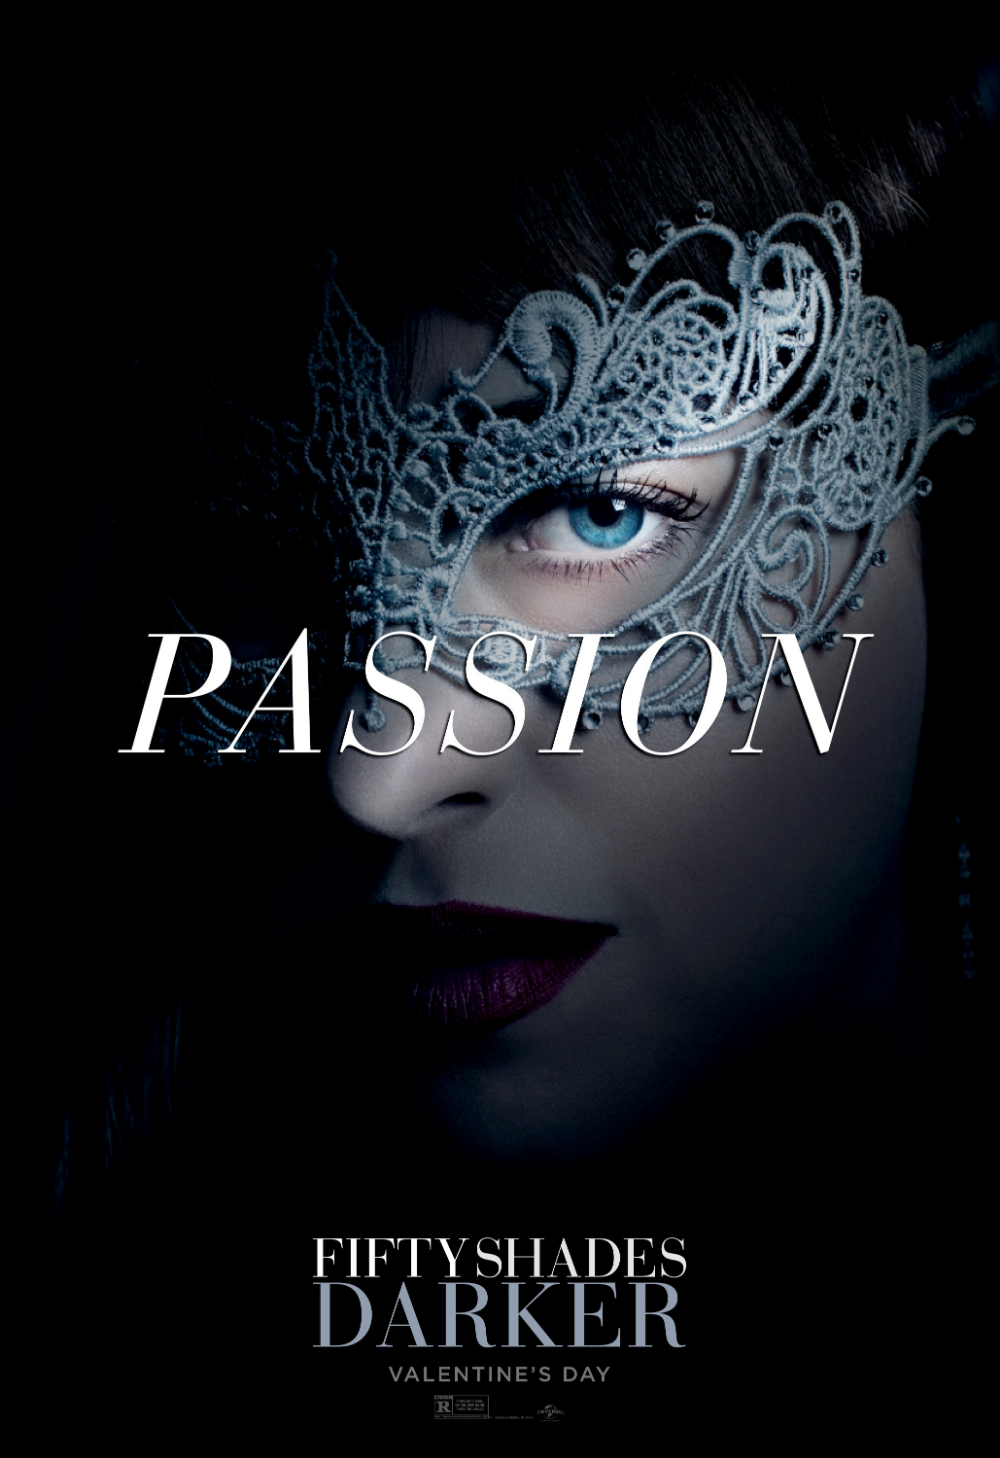 Fifty Shades Darker 2017 Film Key Art Poster Poster Posterdesign Typography Artdirection Fifty Shades Darker Poster Fifty Shades Darker Fifty Shades